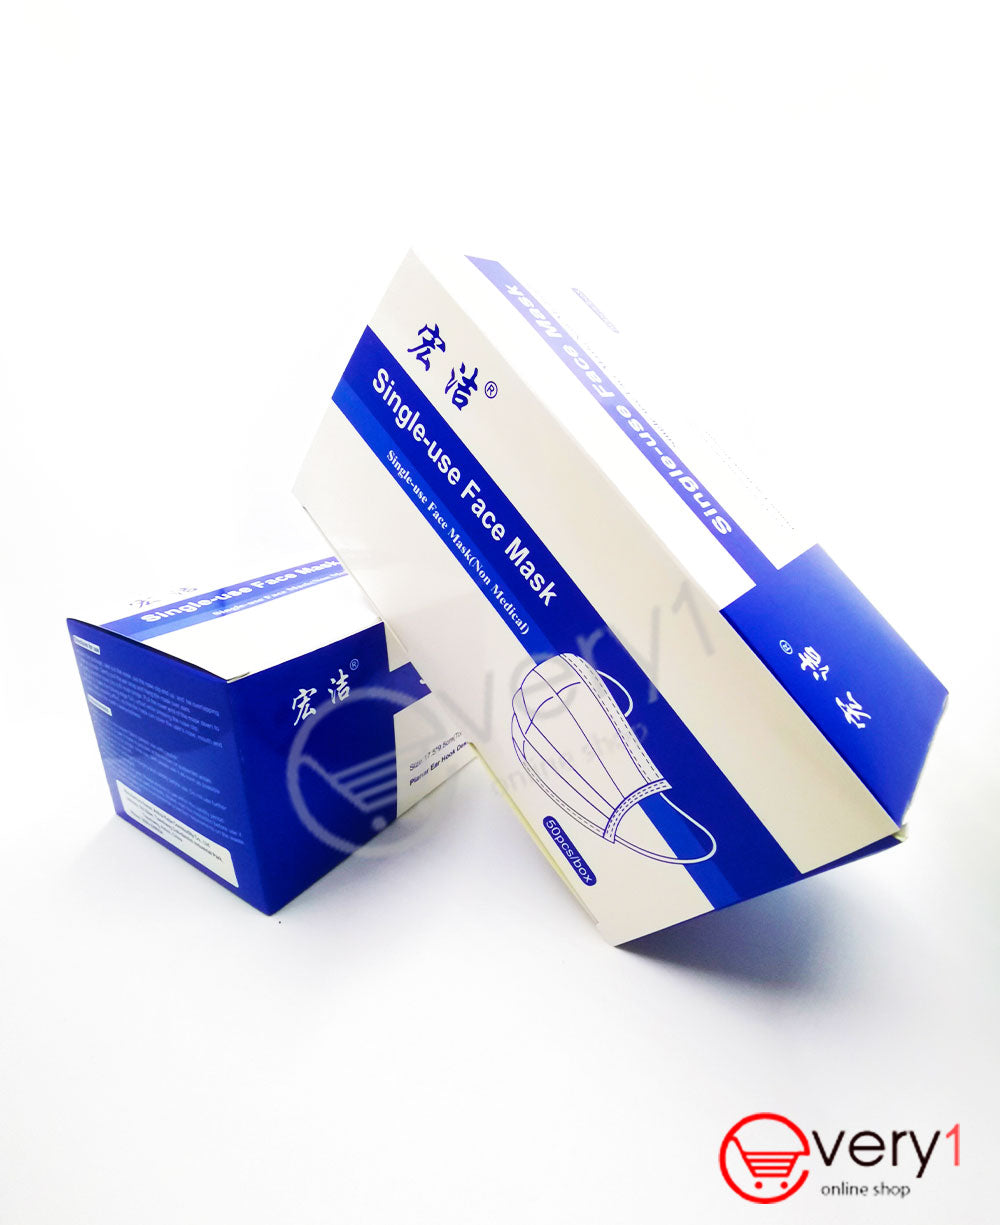 [FREE GIFTS] HJ Disposable 3 ply Face Mask - Adult - 2 Boxes